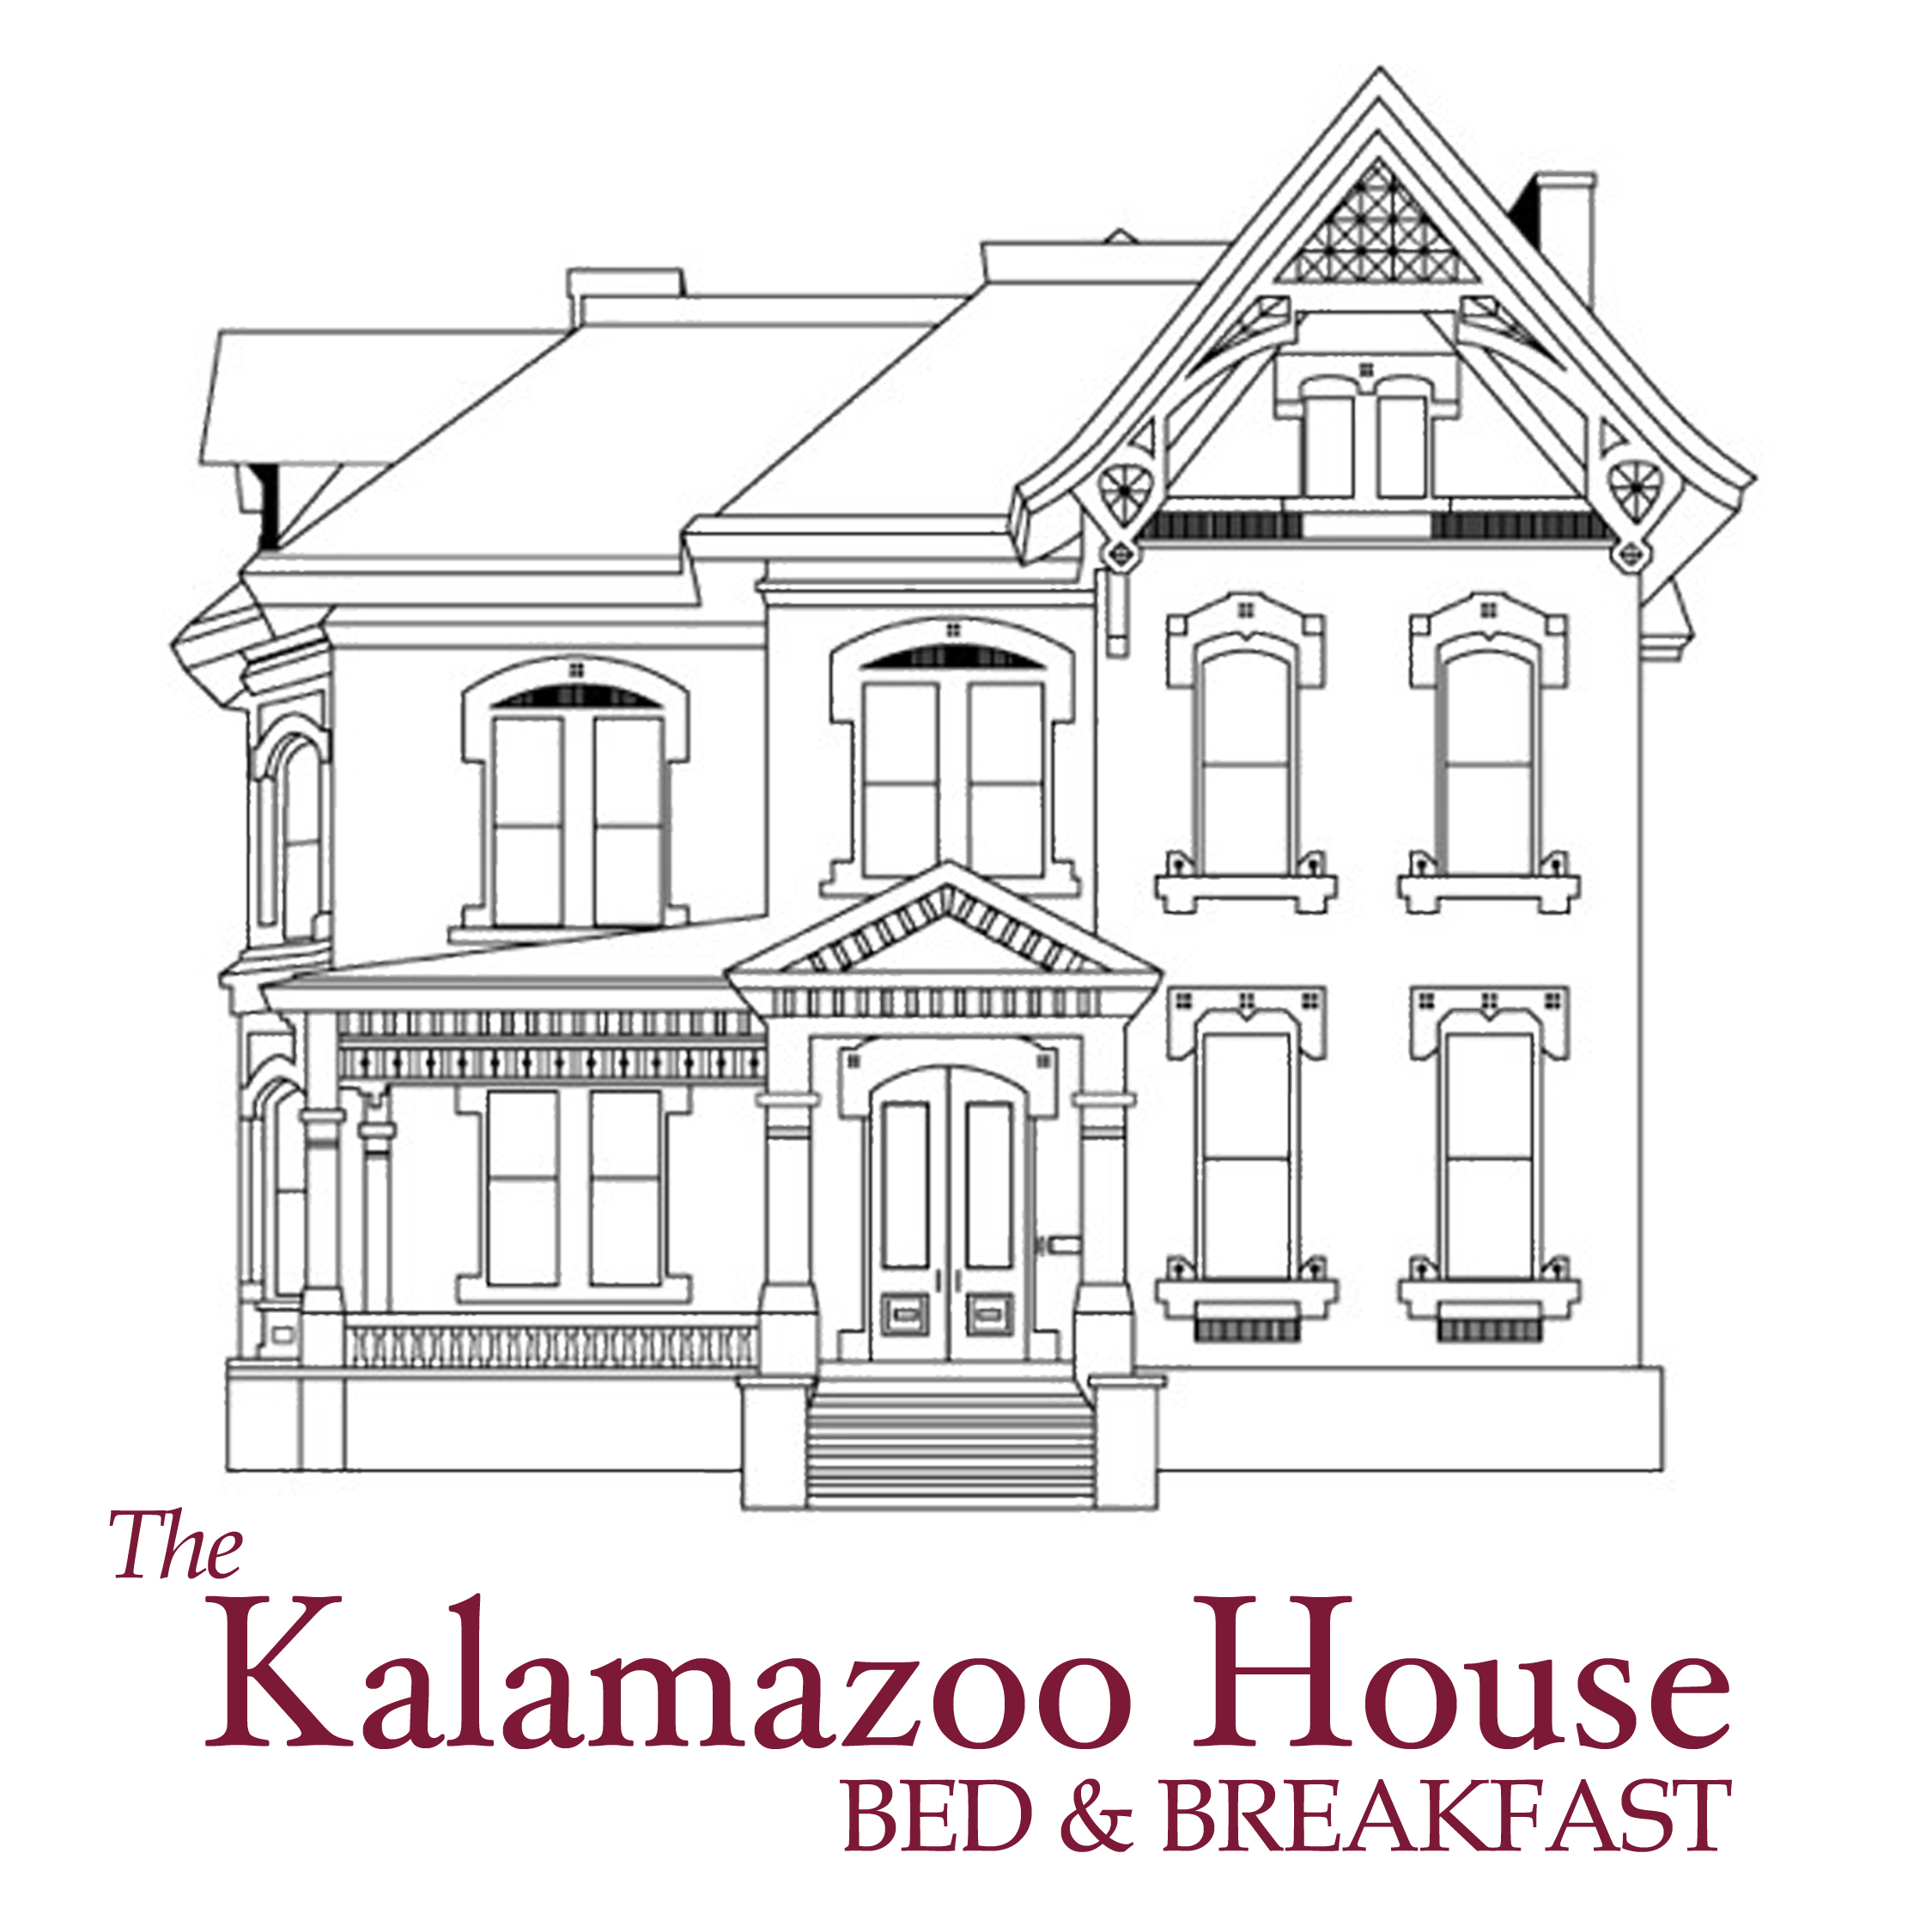 The Kalamazoo House